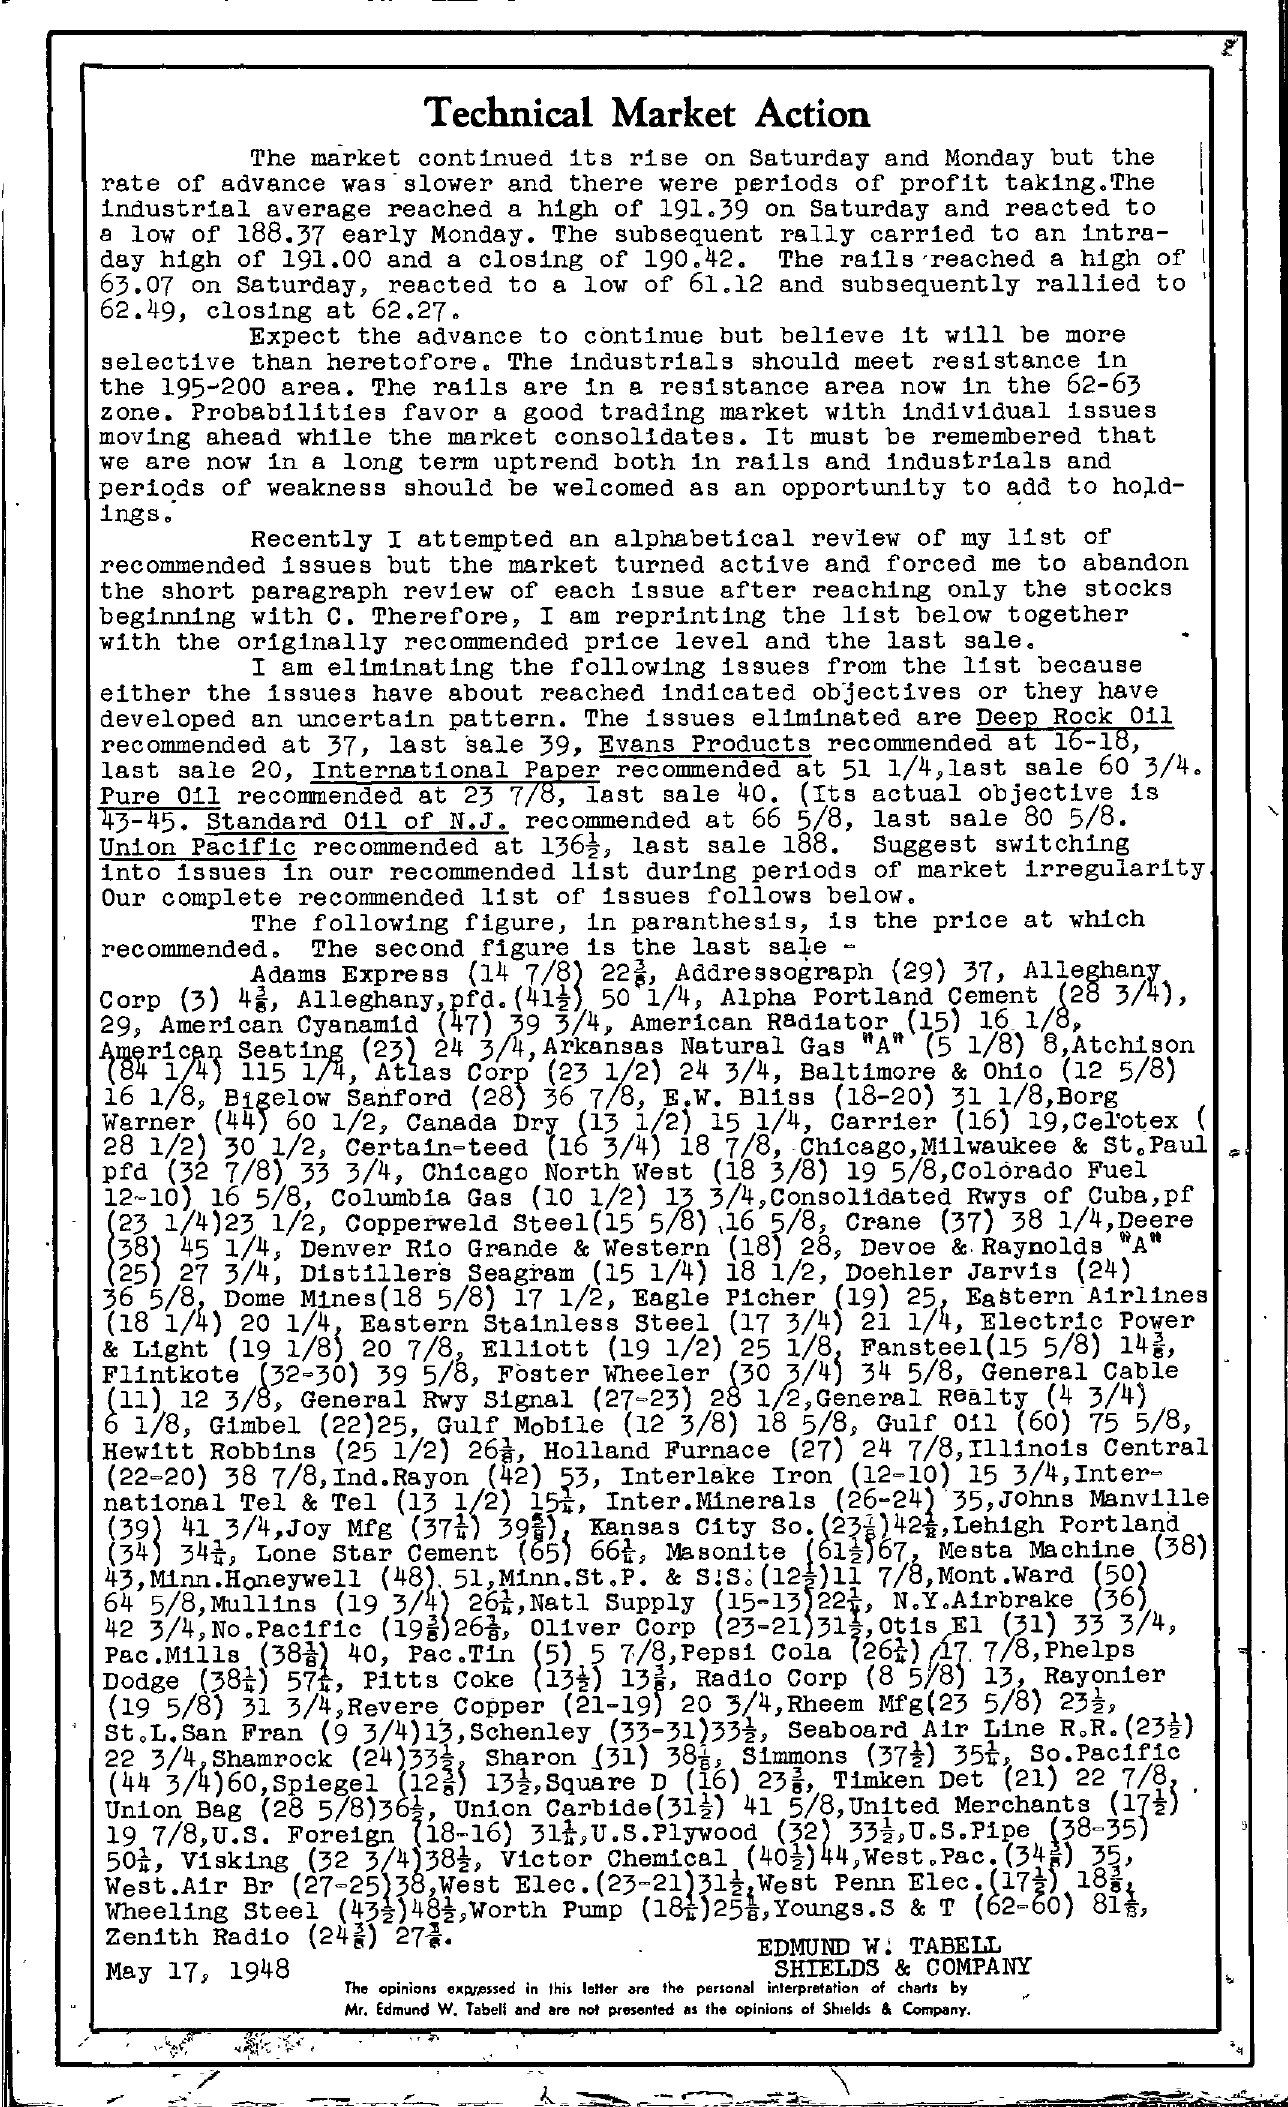 Tabell's Market Letter - May 17, 1948